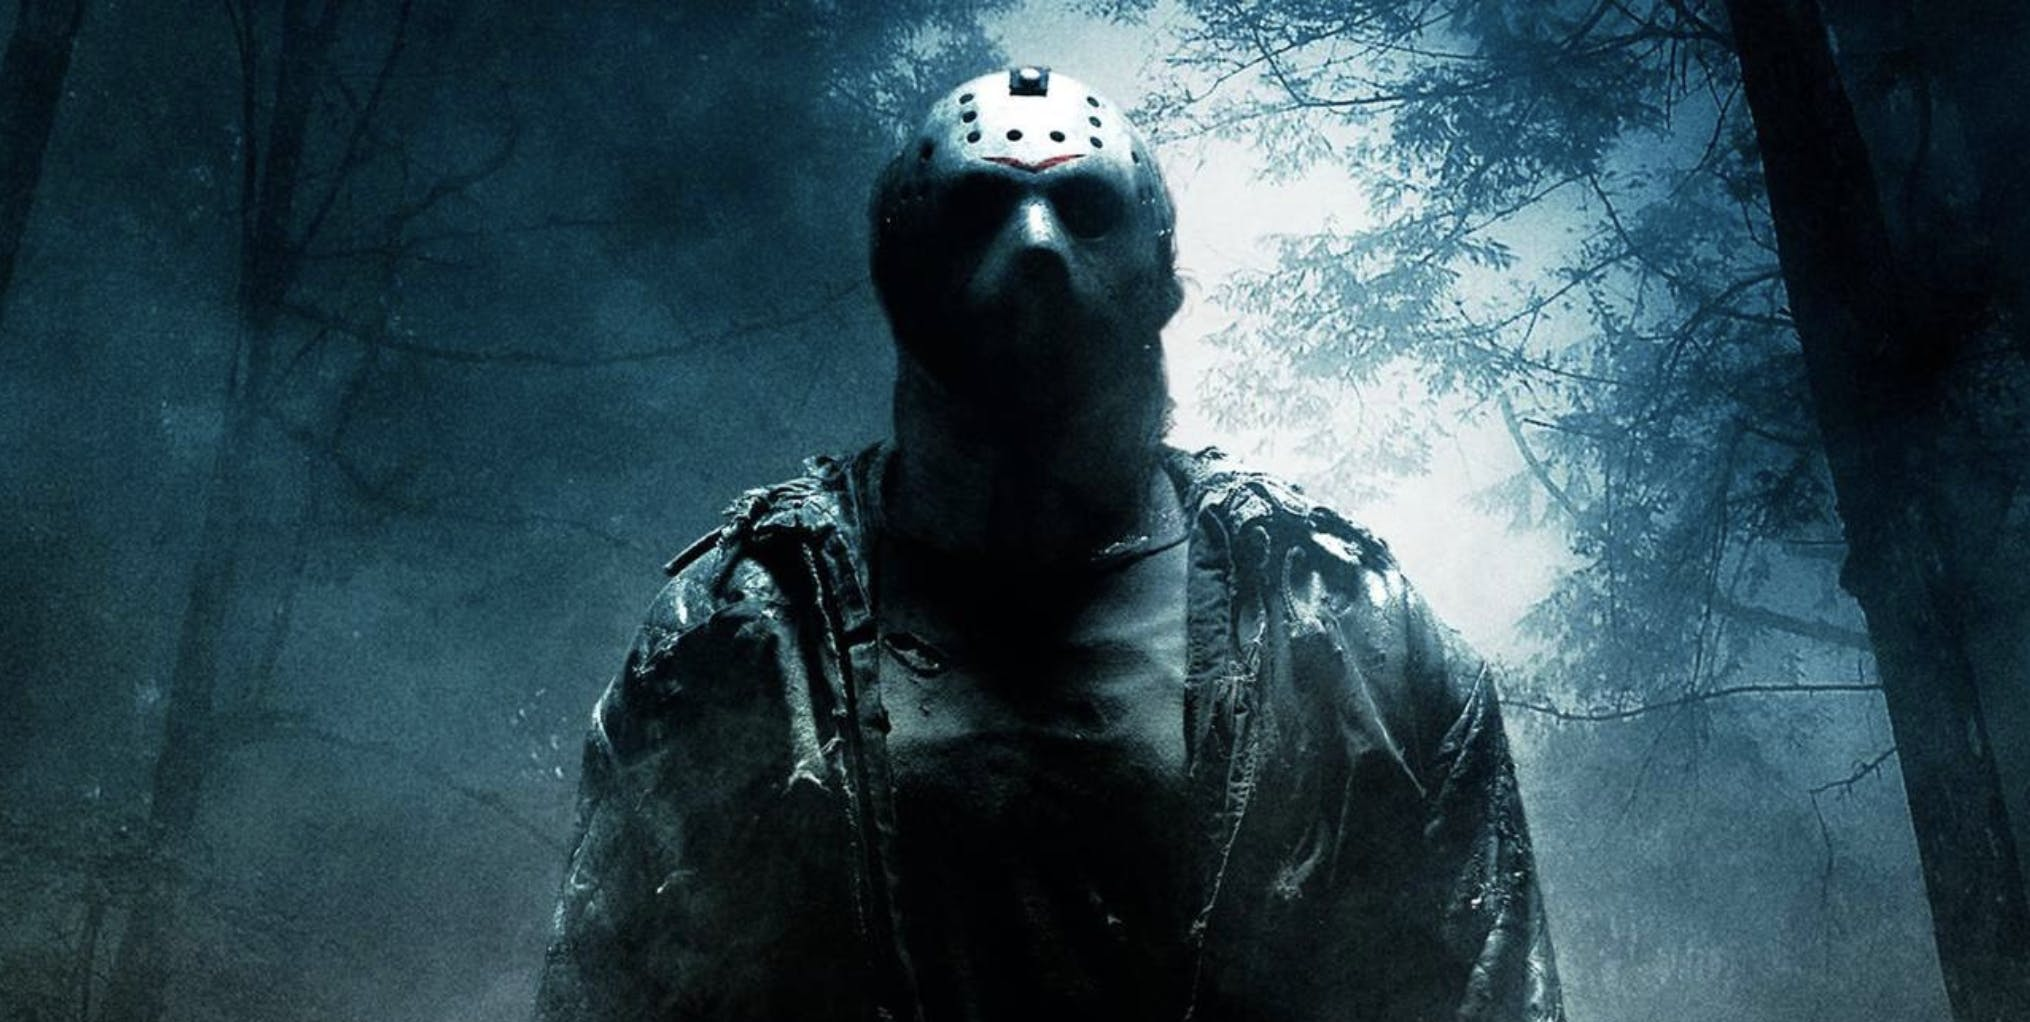 porn movies on hbo - friday the 13th